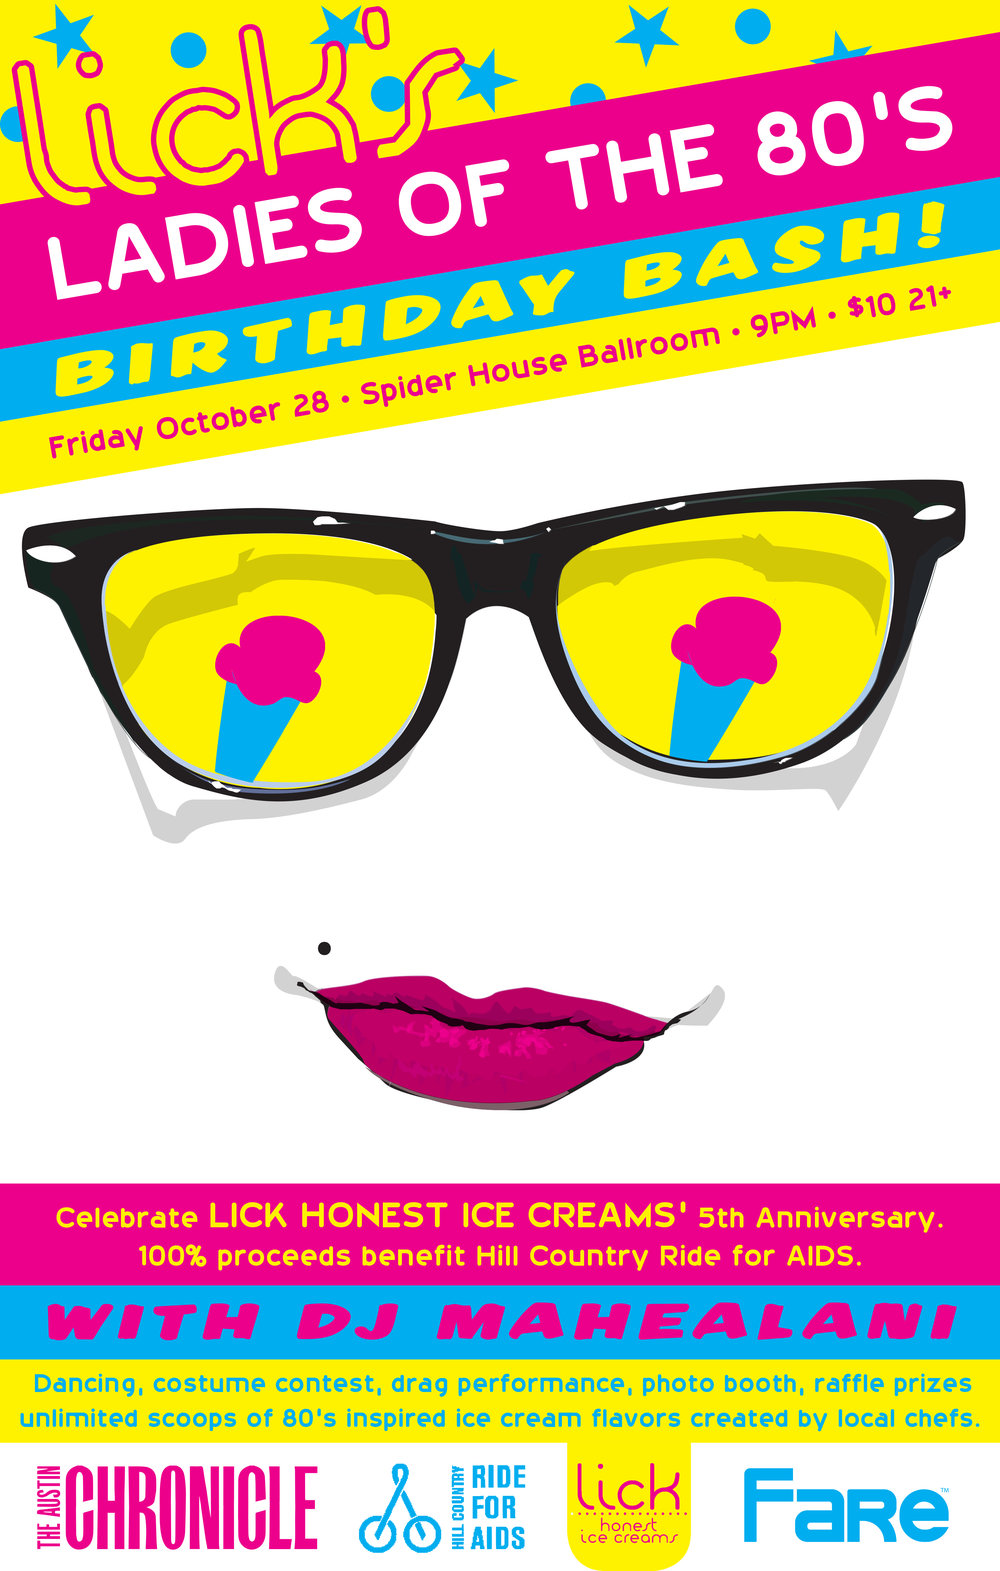 oct 28th lick s ladies of the 80s birthday bash bossbabesatx